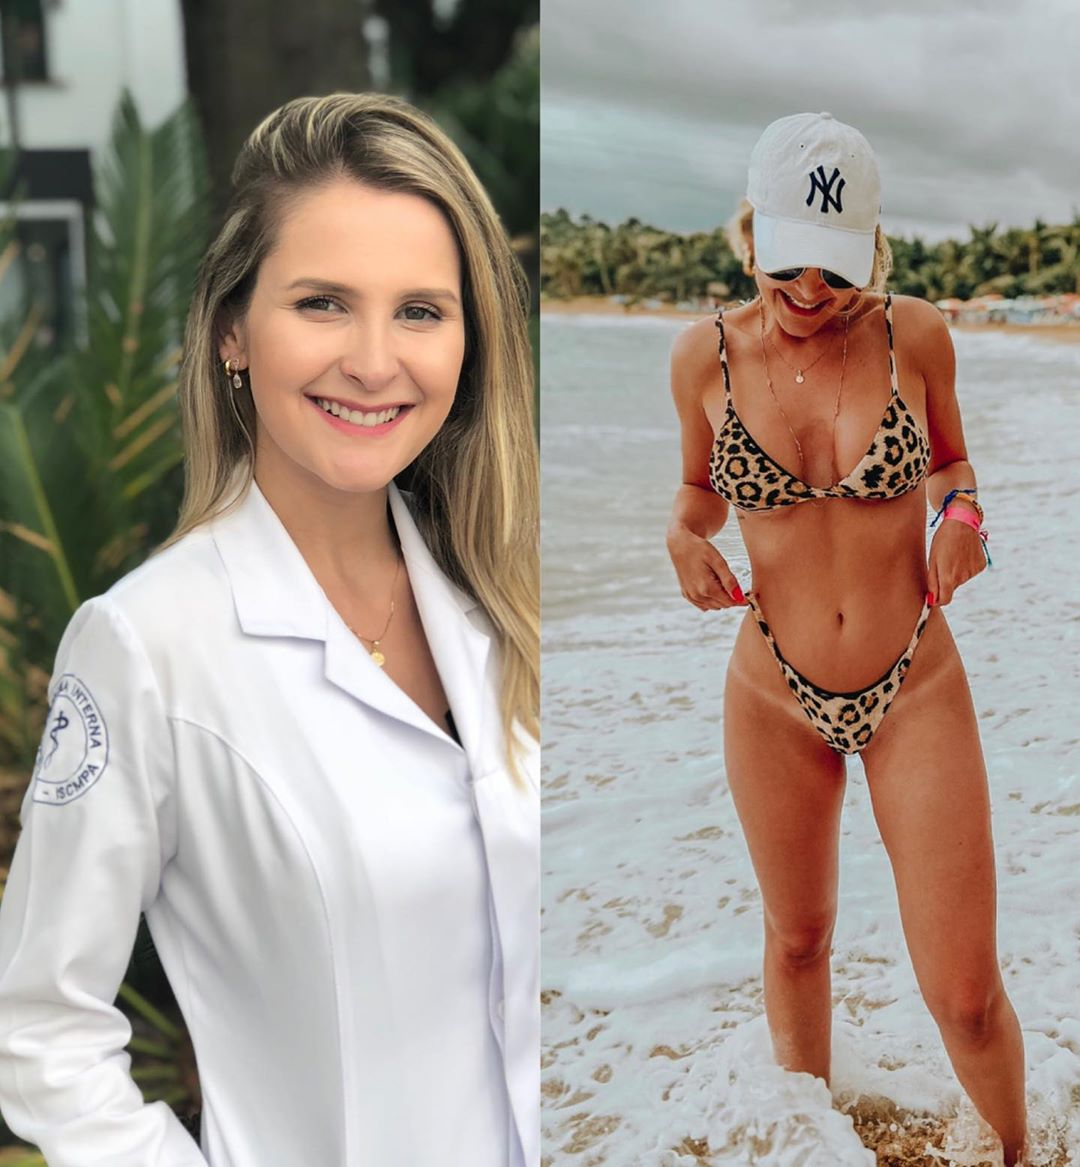 Women Healthcare Workers Post #MedBikini Pics (28 Pics)